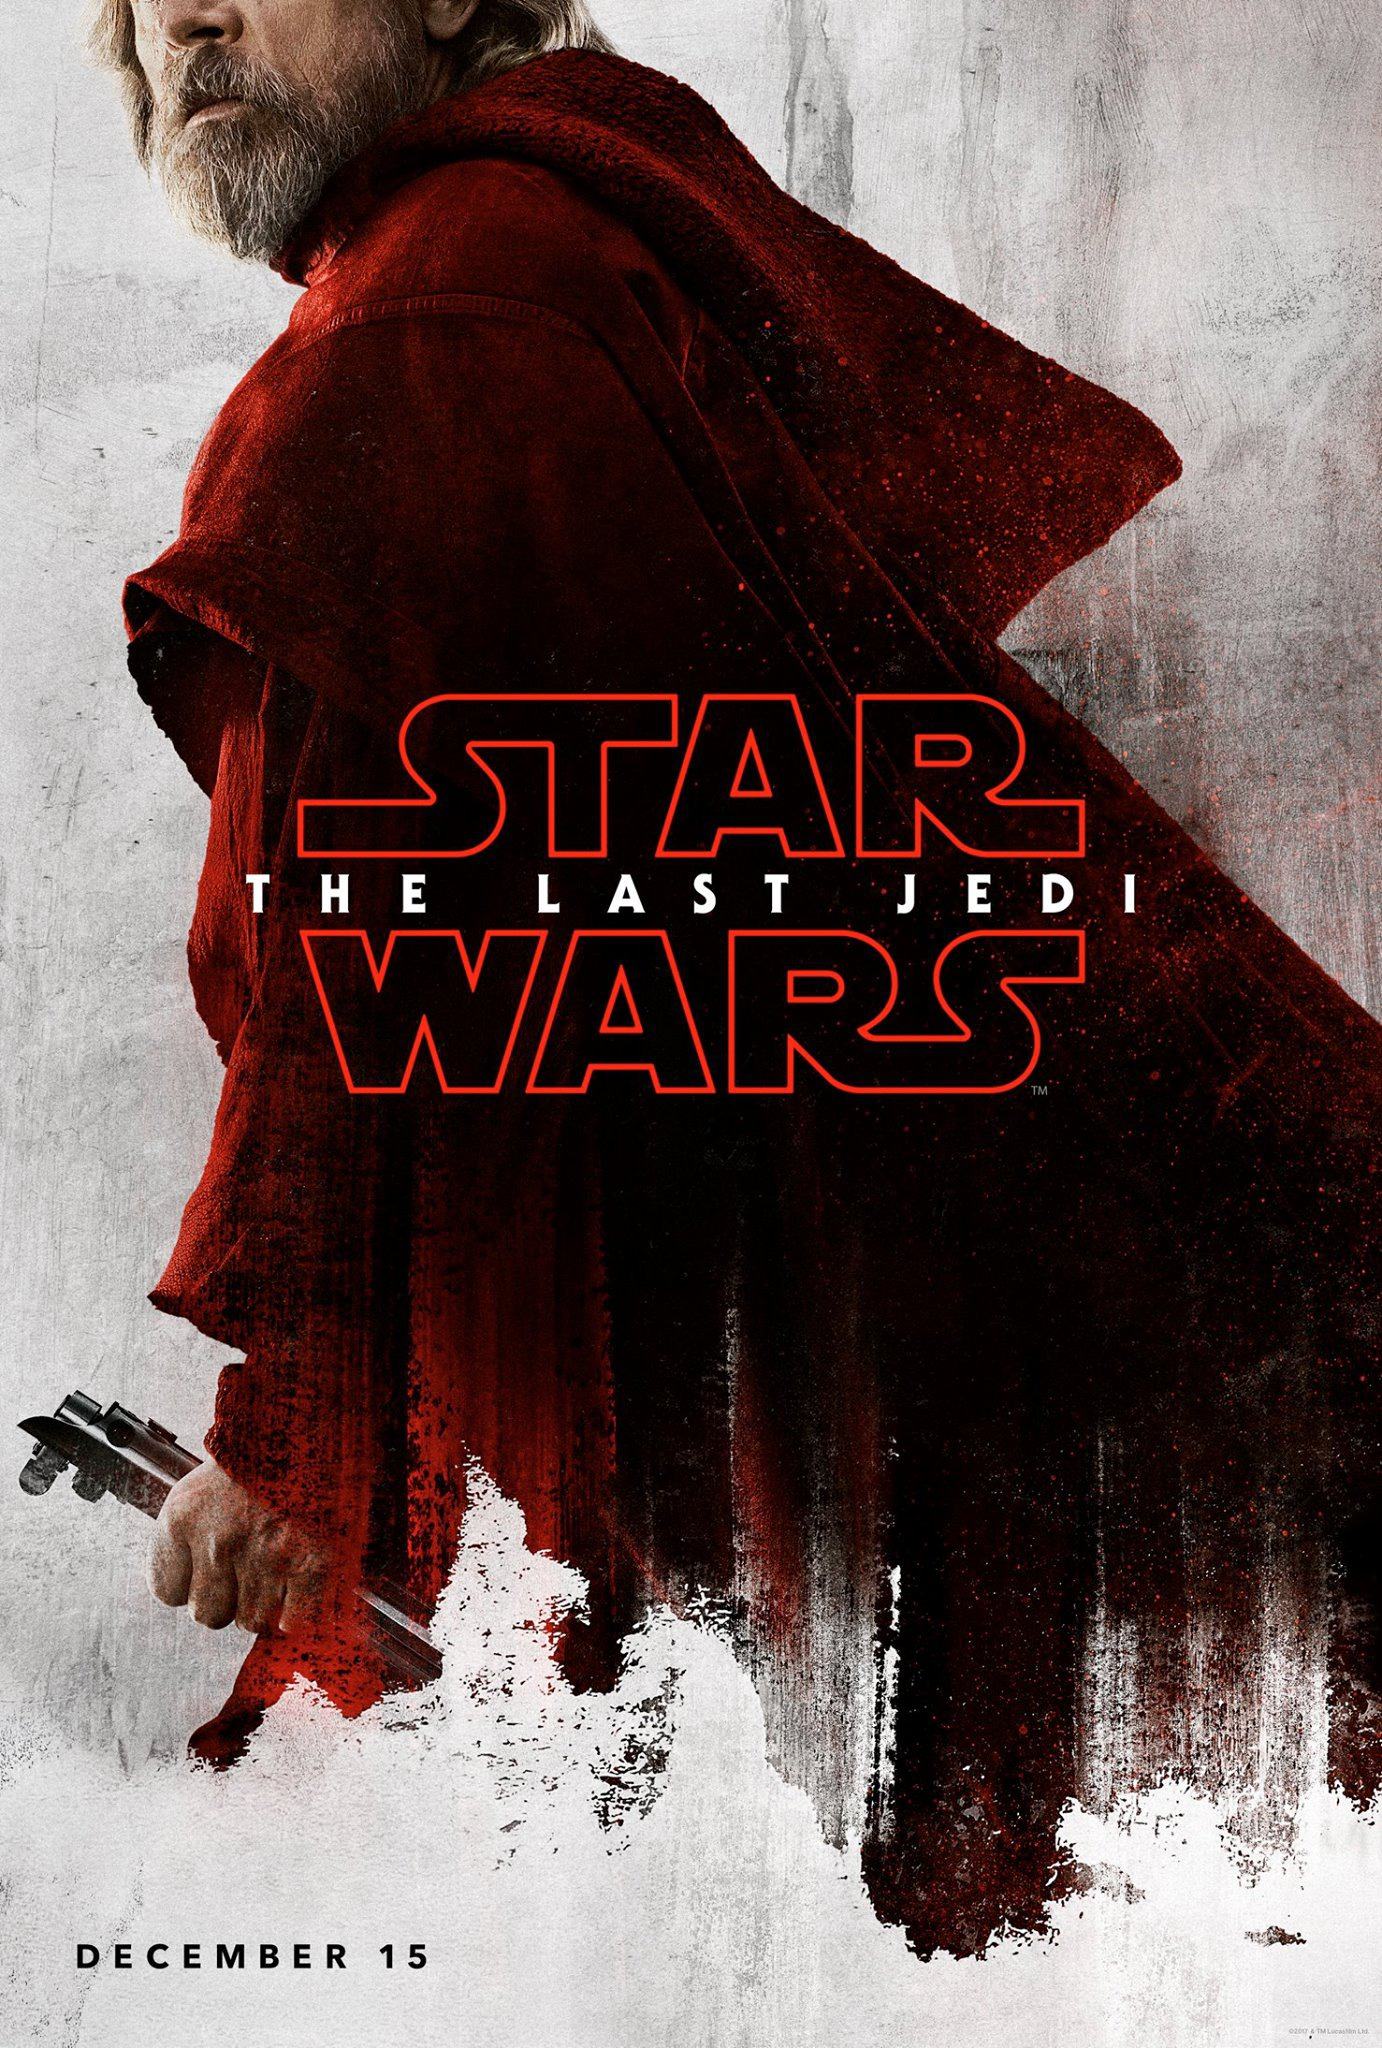 Ben Hardy further Watch besides Carrie Fisher S Daughter Billie Lourd NOT Playing Young Princess Leia Star Wars besides Star Wars Os Ultimos Jedi Tem Varias Imagens Promocionais Dos Personagens Divulgadas additionally 5 Reasons The New Star Wars Trailer Was The Perfect First Glimpse At The Force Awakens. on oscar isaac domhnall gleeson